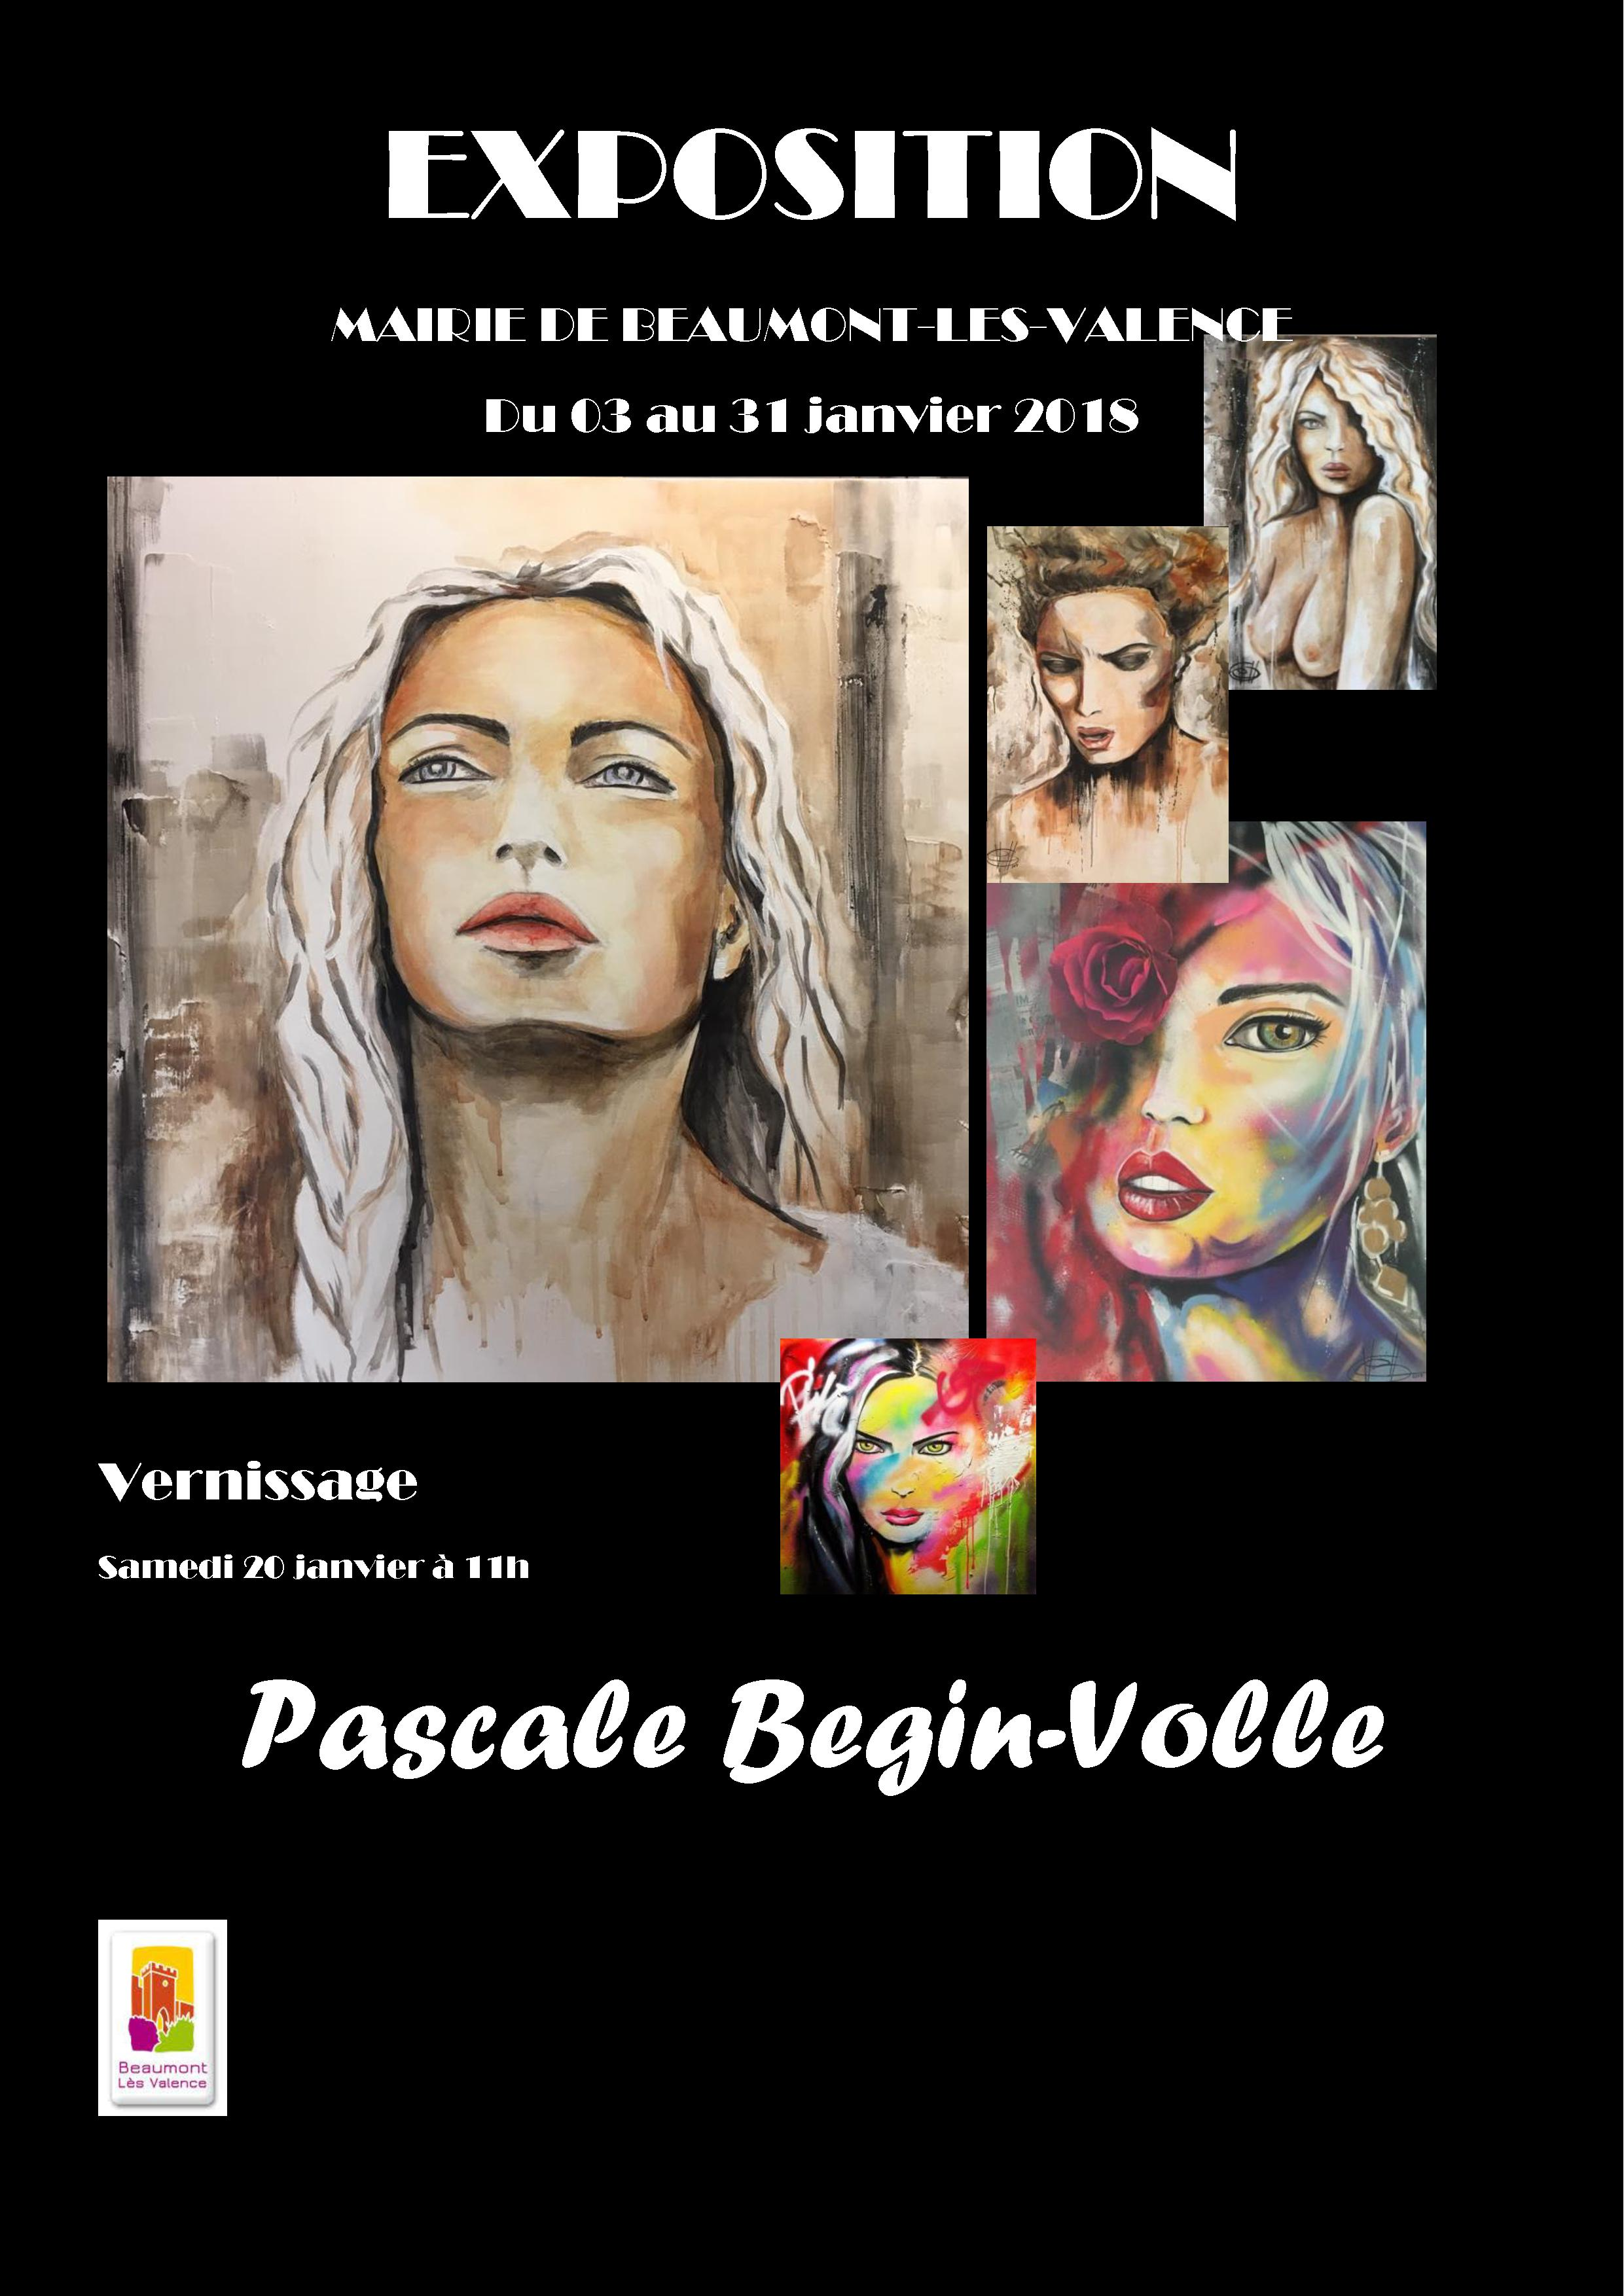 BEGIN-VOLLE Pascale